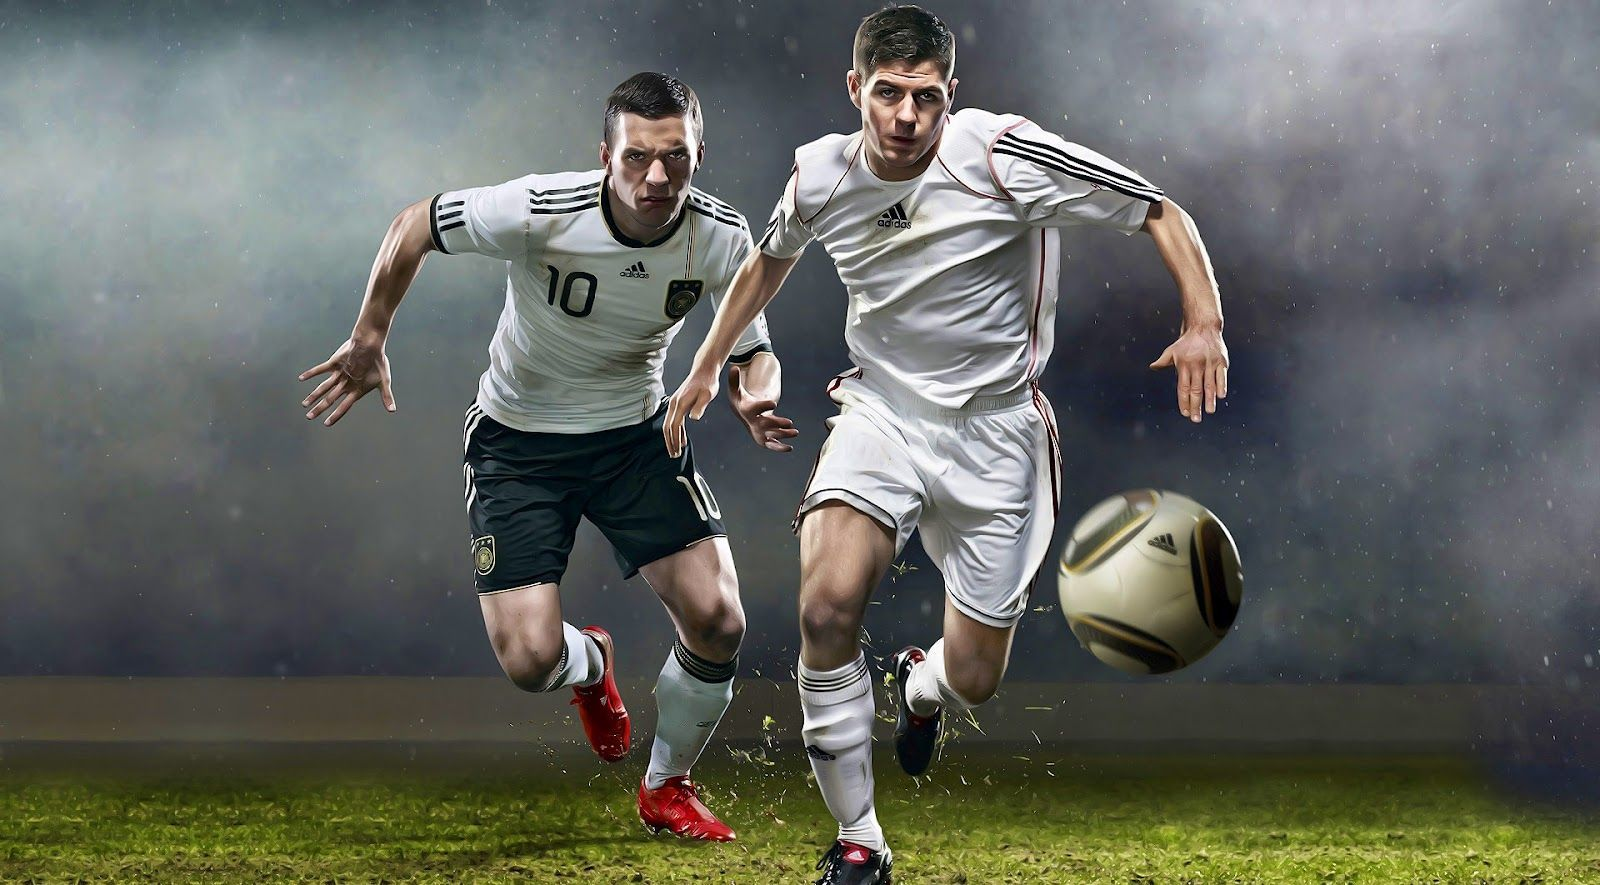 Wallpaper Of Soccer Players